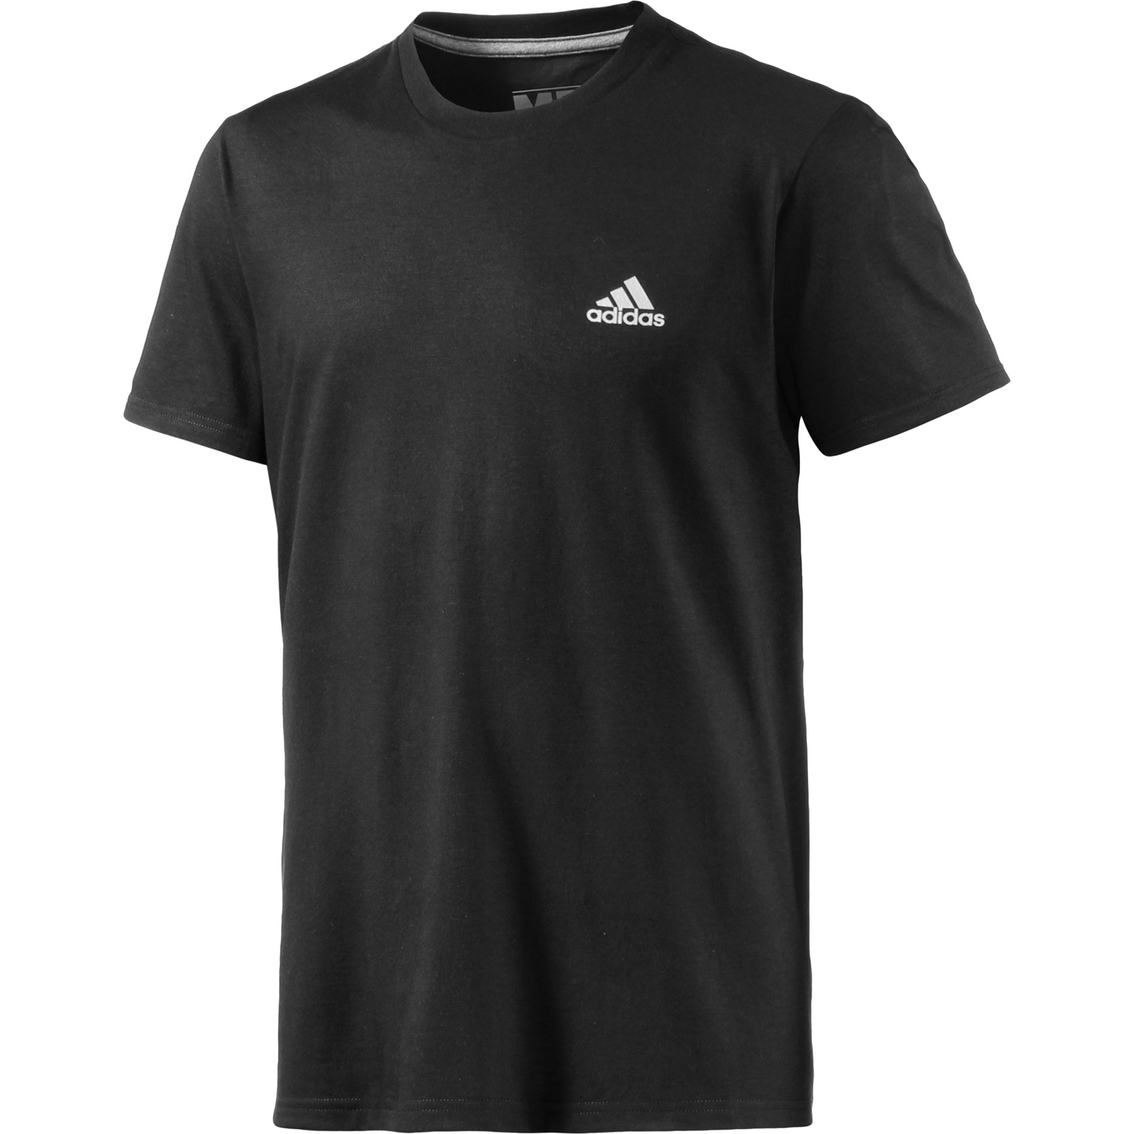 adidas go to performance crew tee shirts holiday gift guide shop the exchange. Black Bedroom Furniture Sets. Home Design Ideas